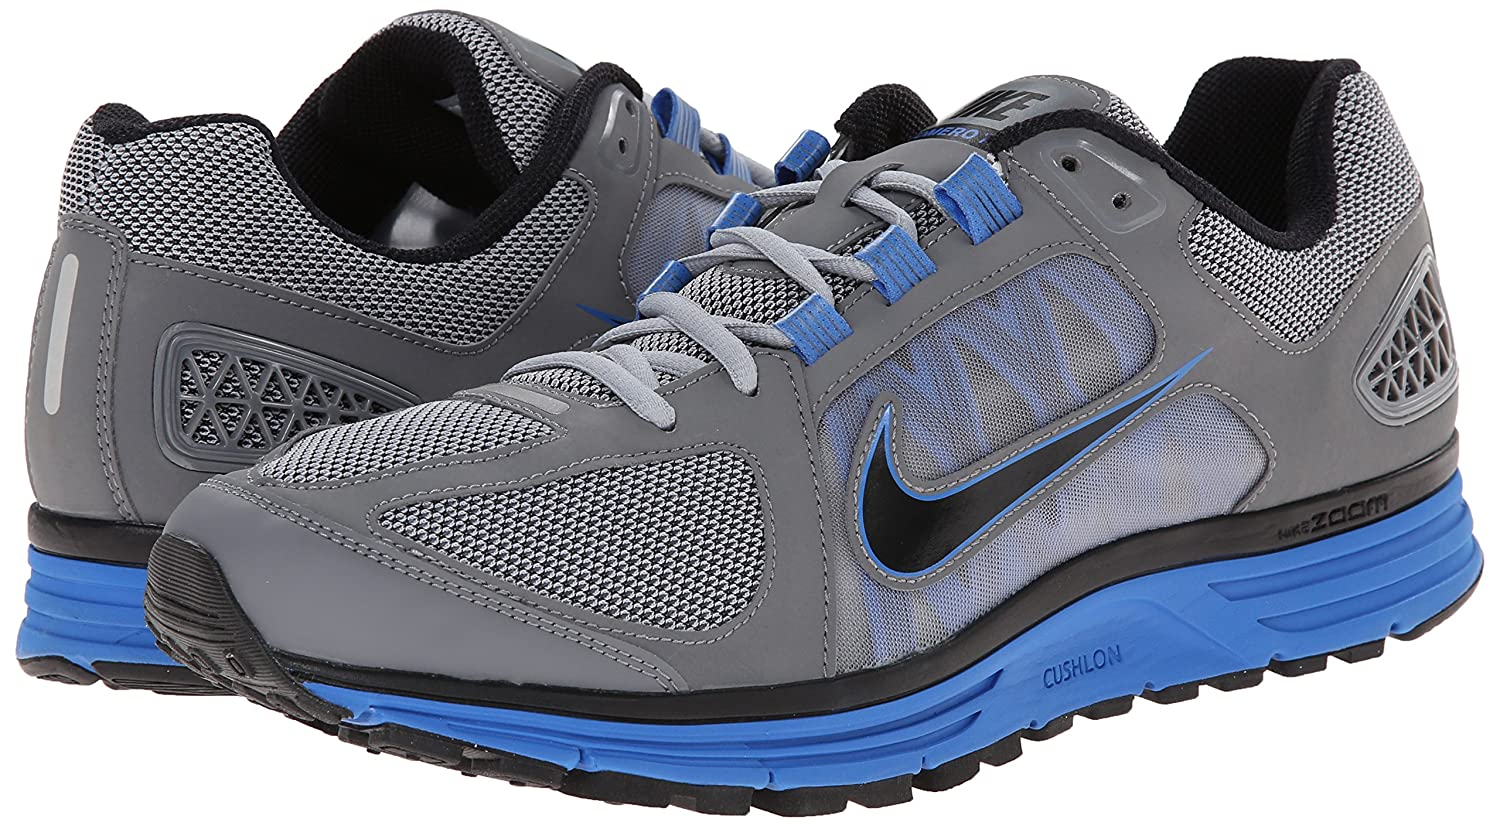 dc7e2d627579 Nike Men s Zoom Vomero+ 7 WLFGRY Black Running Shoes-12 UK India(47.5EU) ( 511488-004)  Buy Online at Low Prices in India - Amazon.in